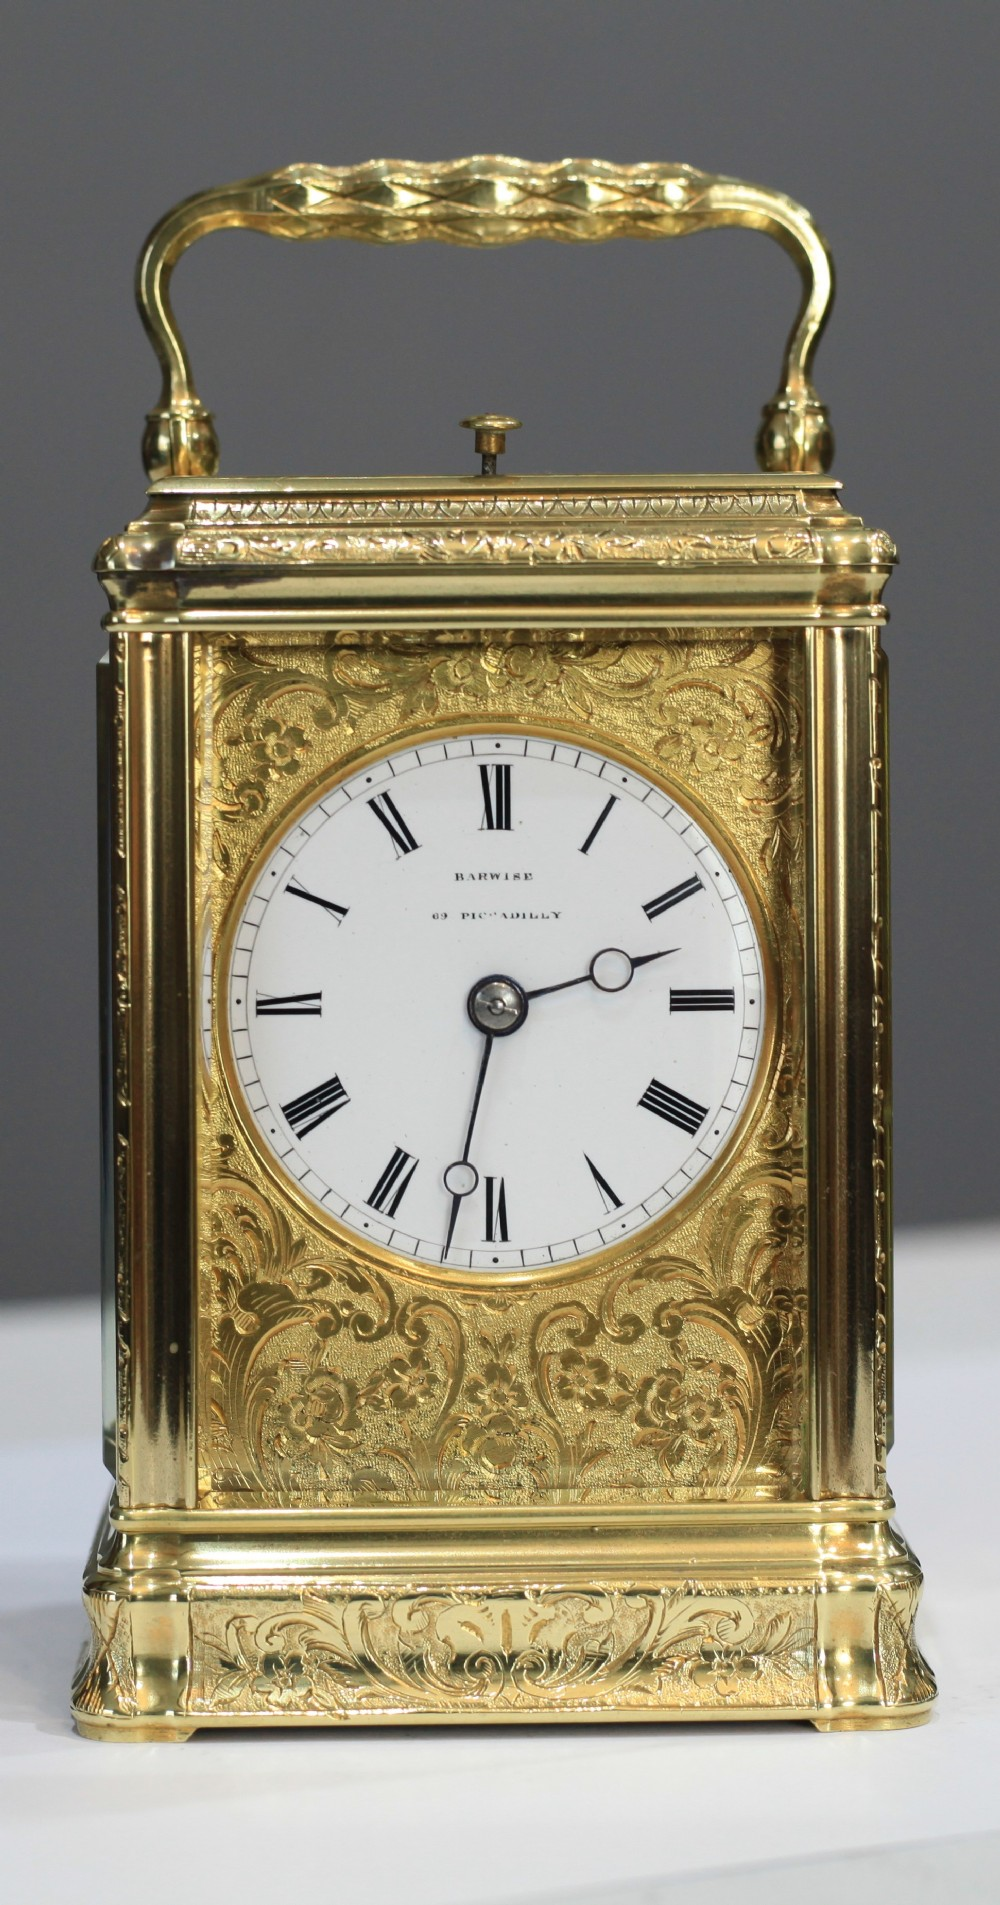 john barwise 17951869 highly engraved small striking carriage clock c1850